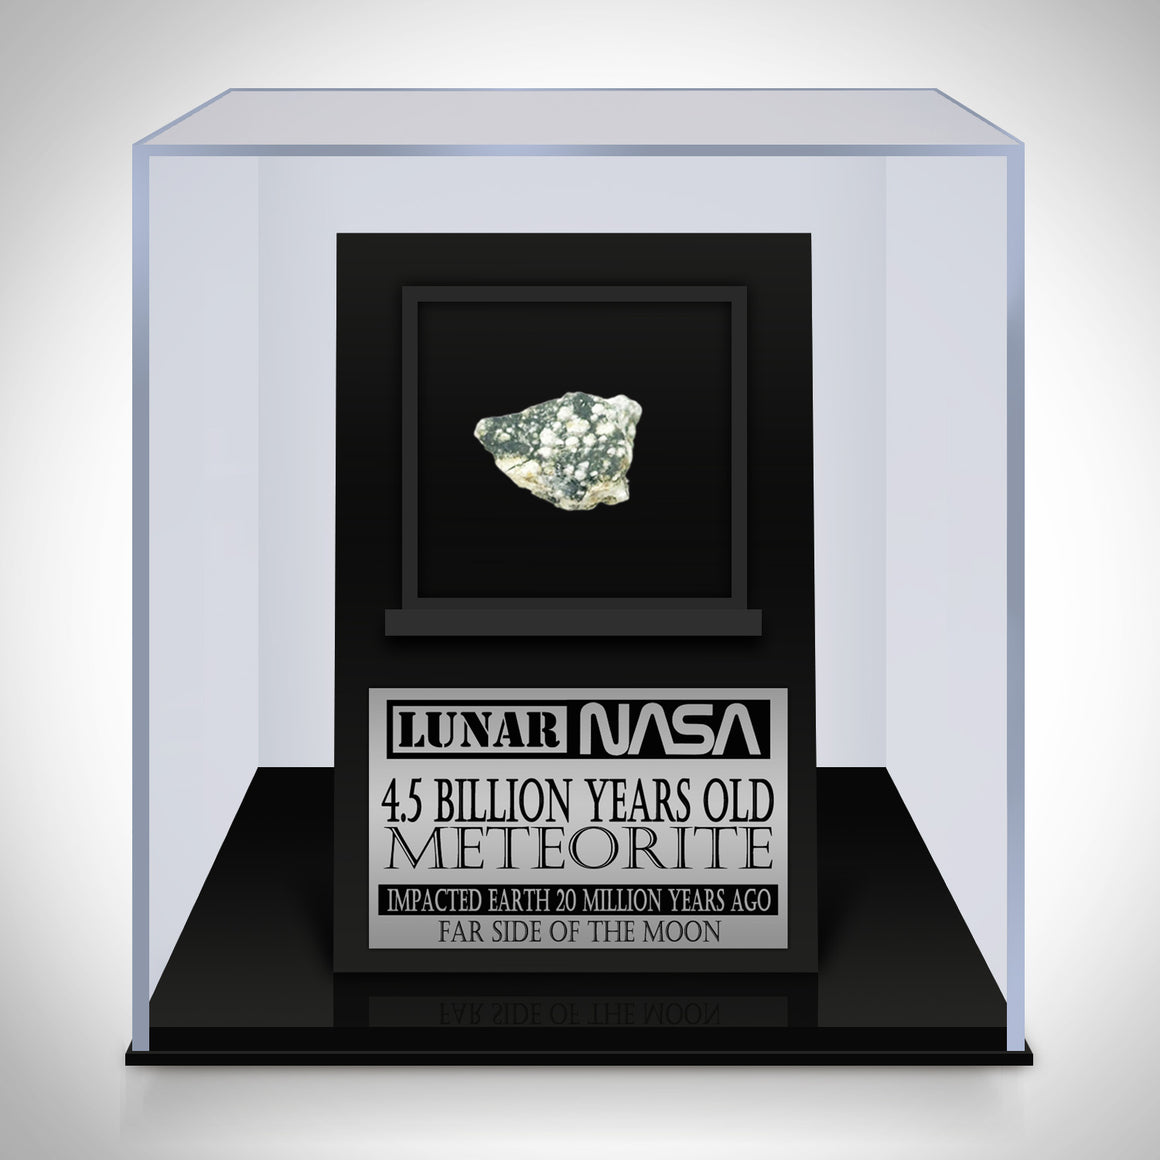 Authentic 4.5 BILLION YEARS OLD 'LUNAR METEORITE' Museum Display